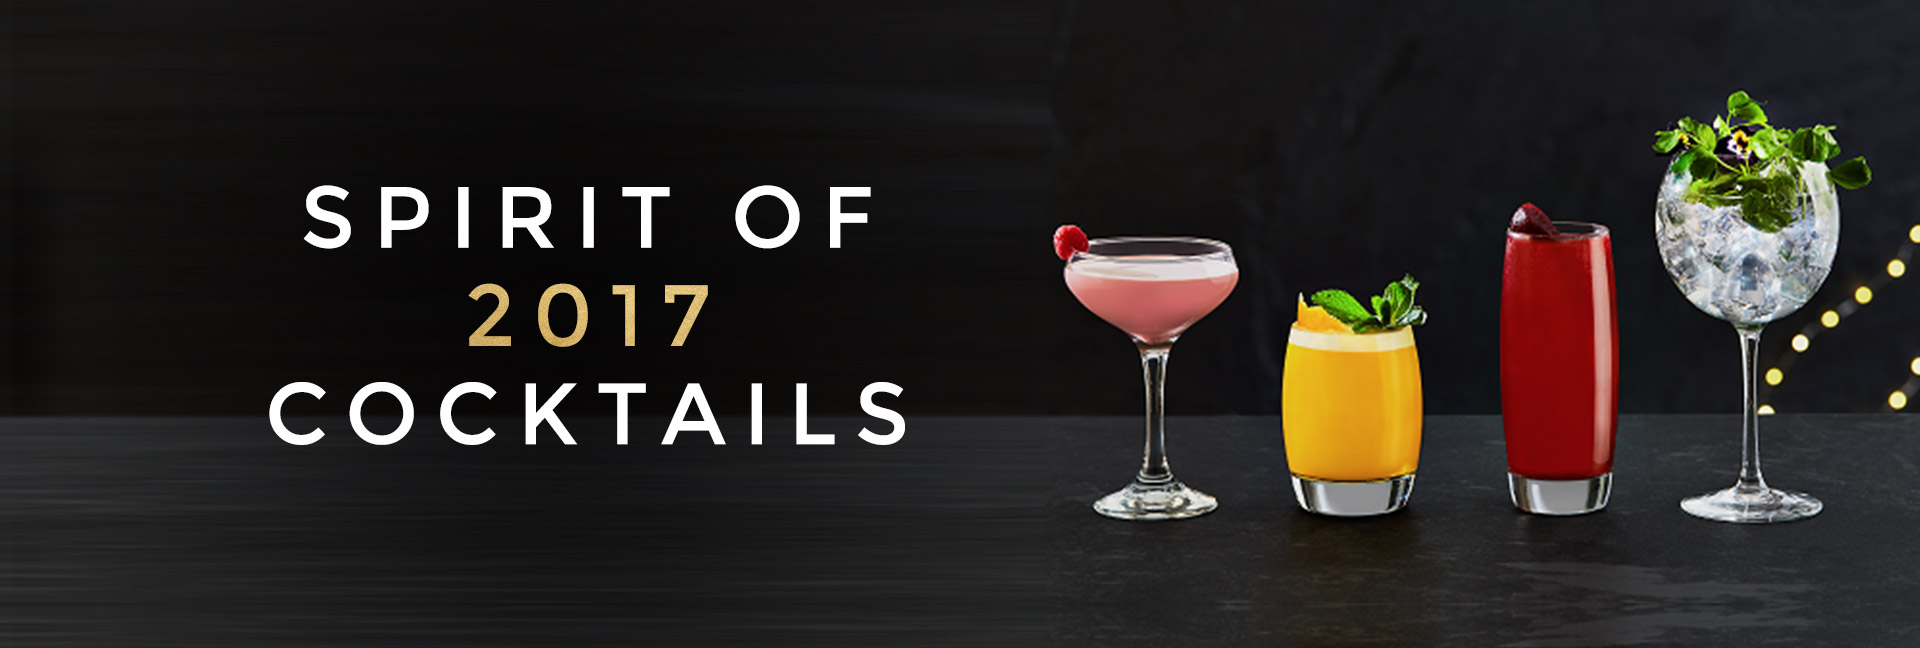 Spirit of 2017 cocktails at All Bar One Sutton